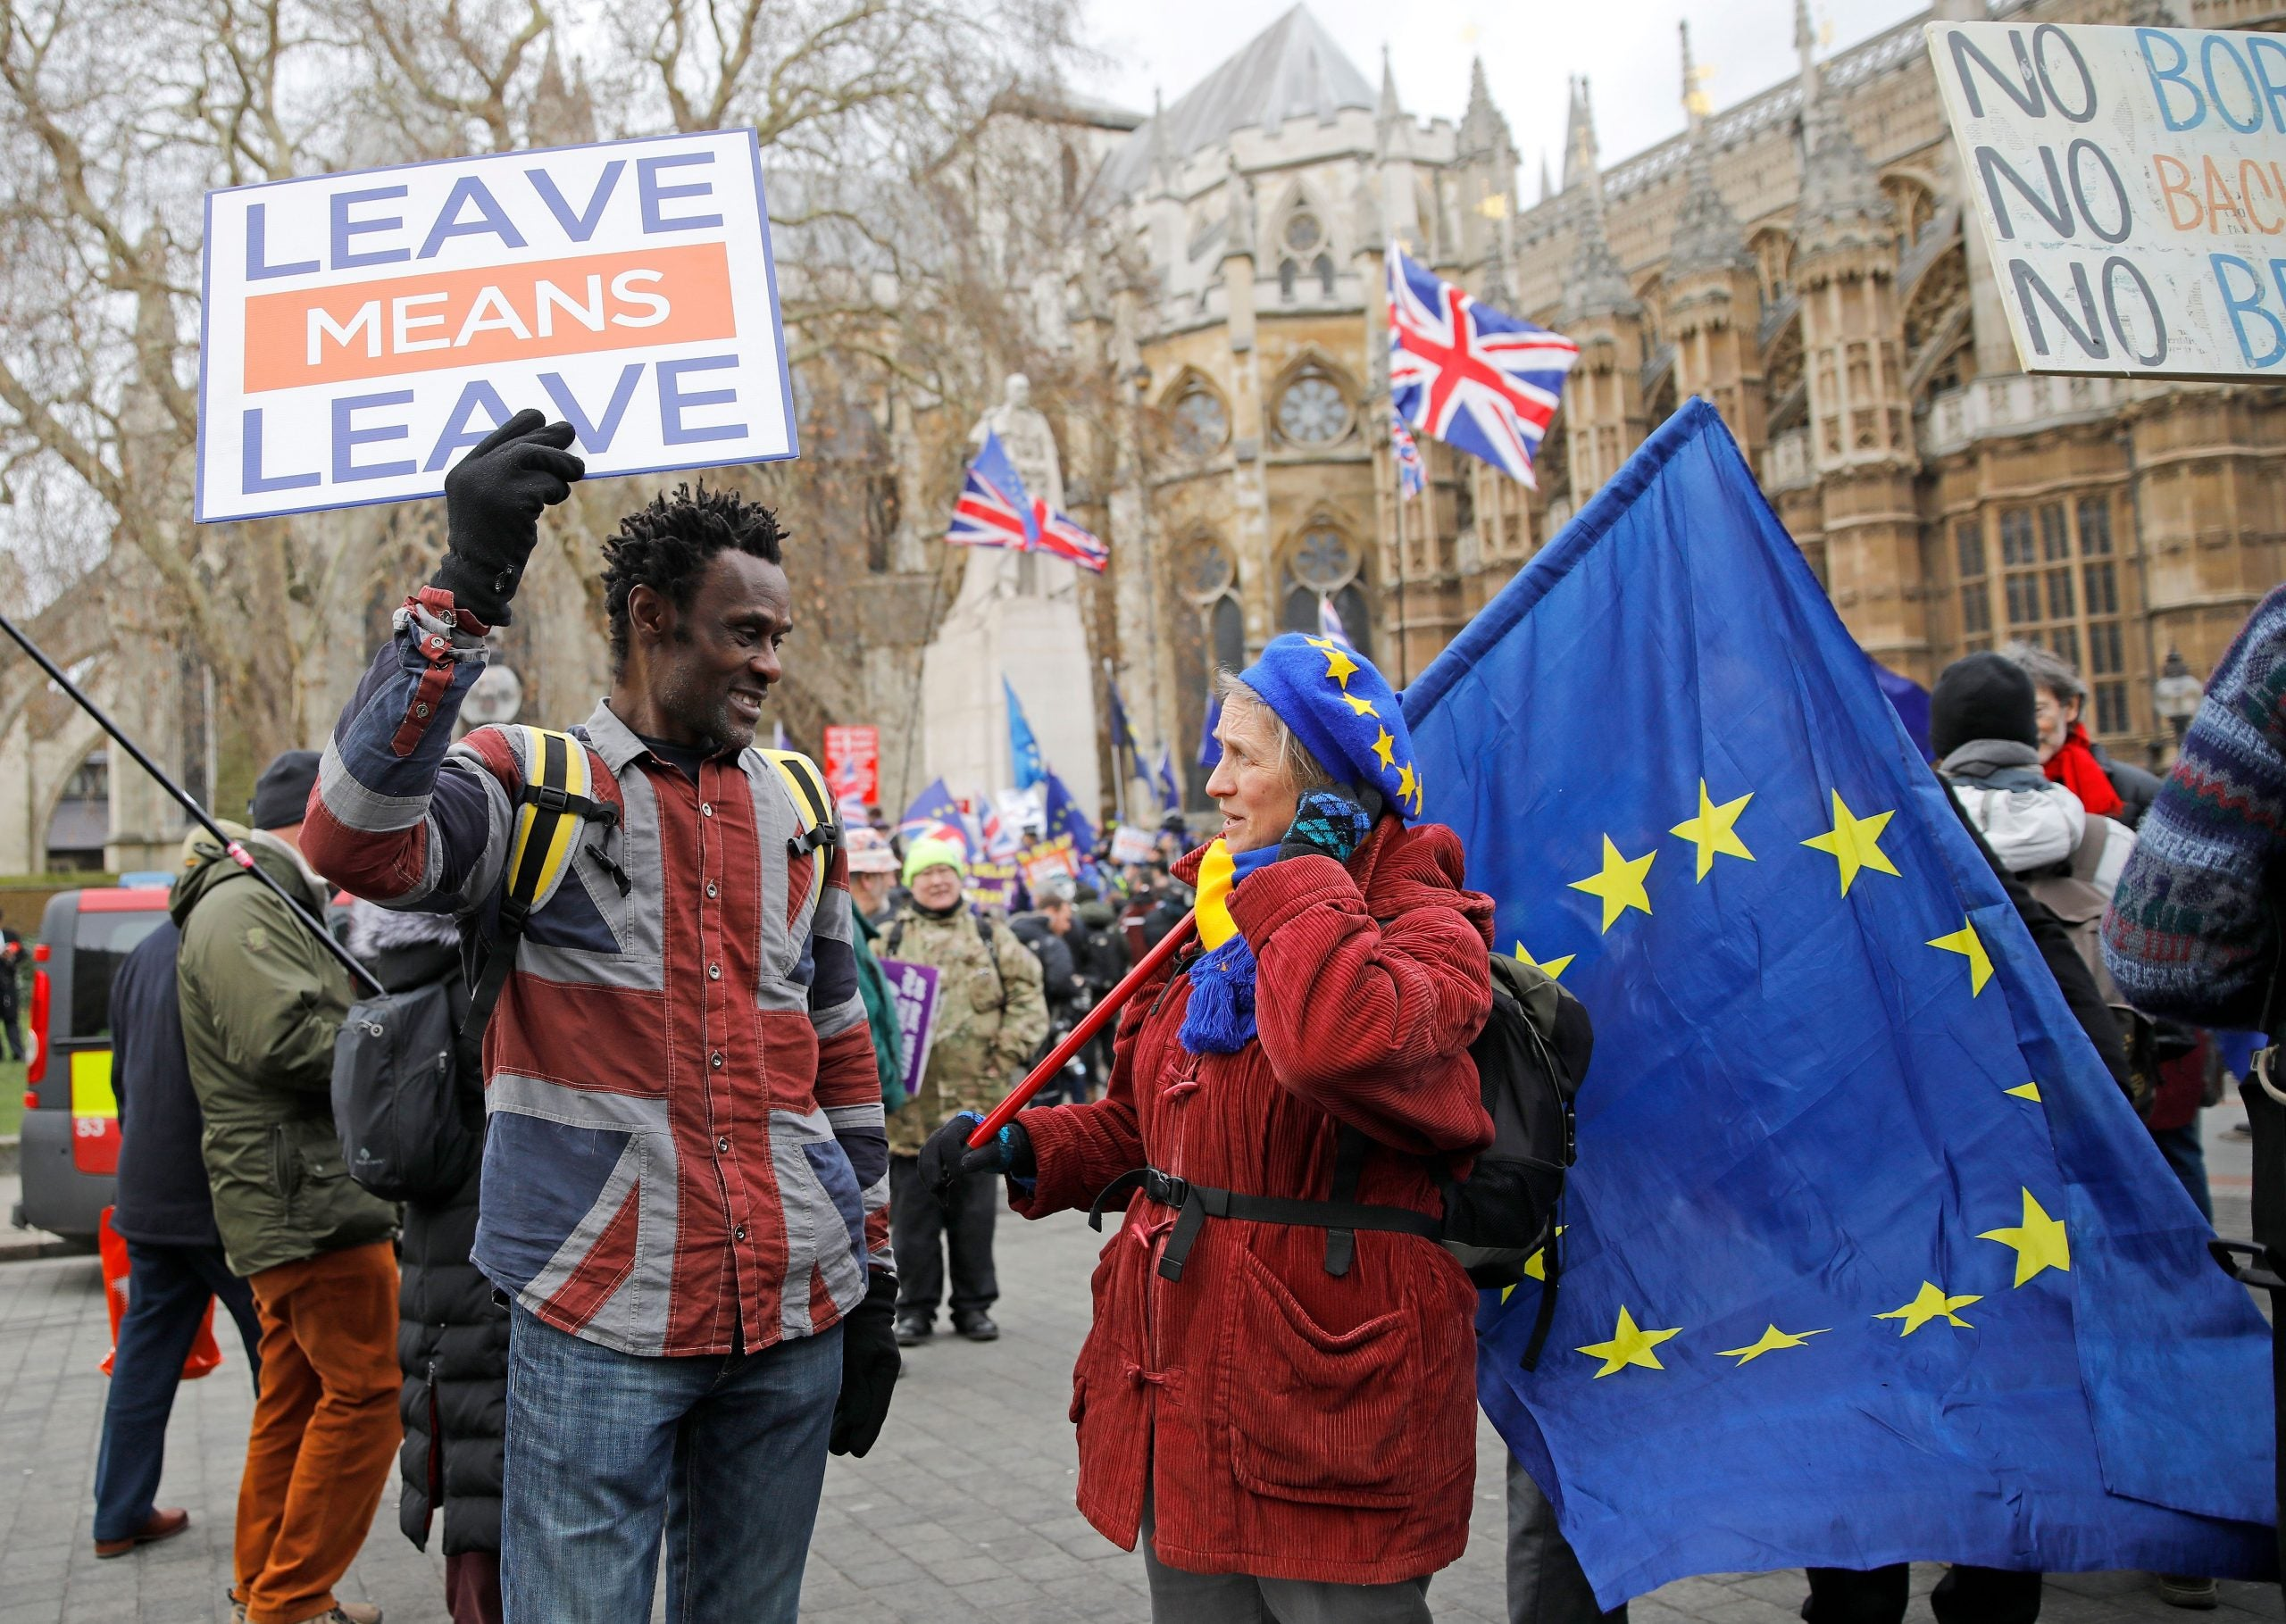 We don't know how ardent Remainers will influence Britain's future, but we know they will